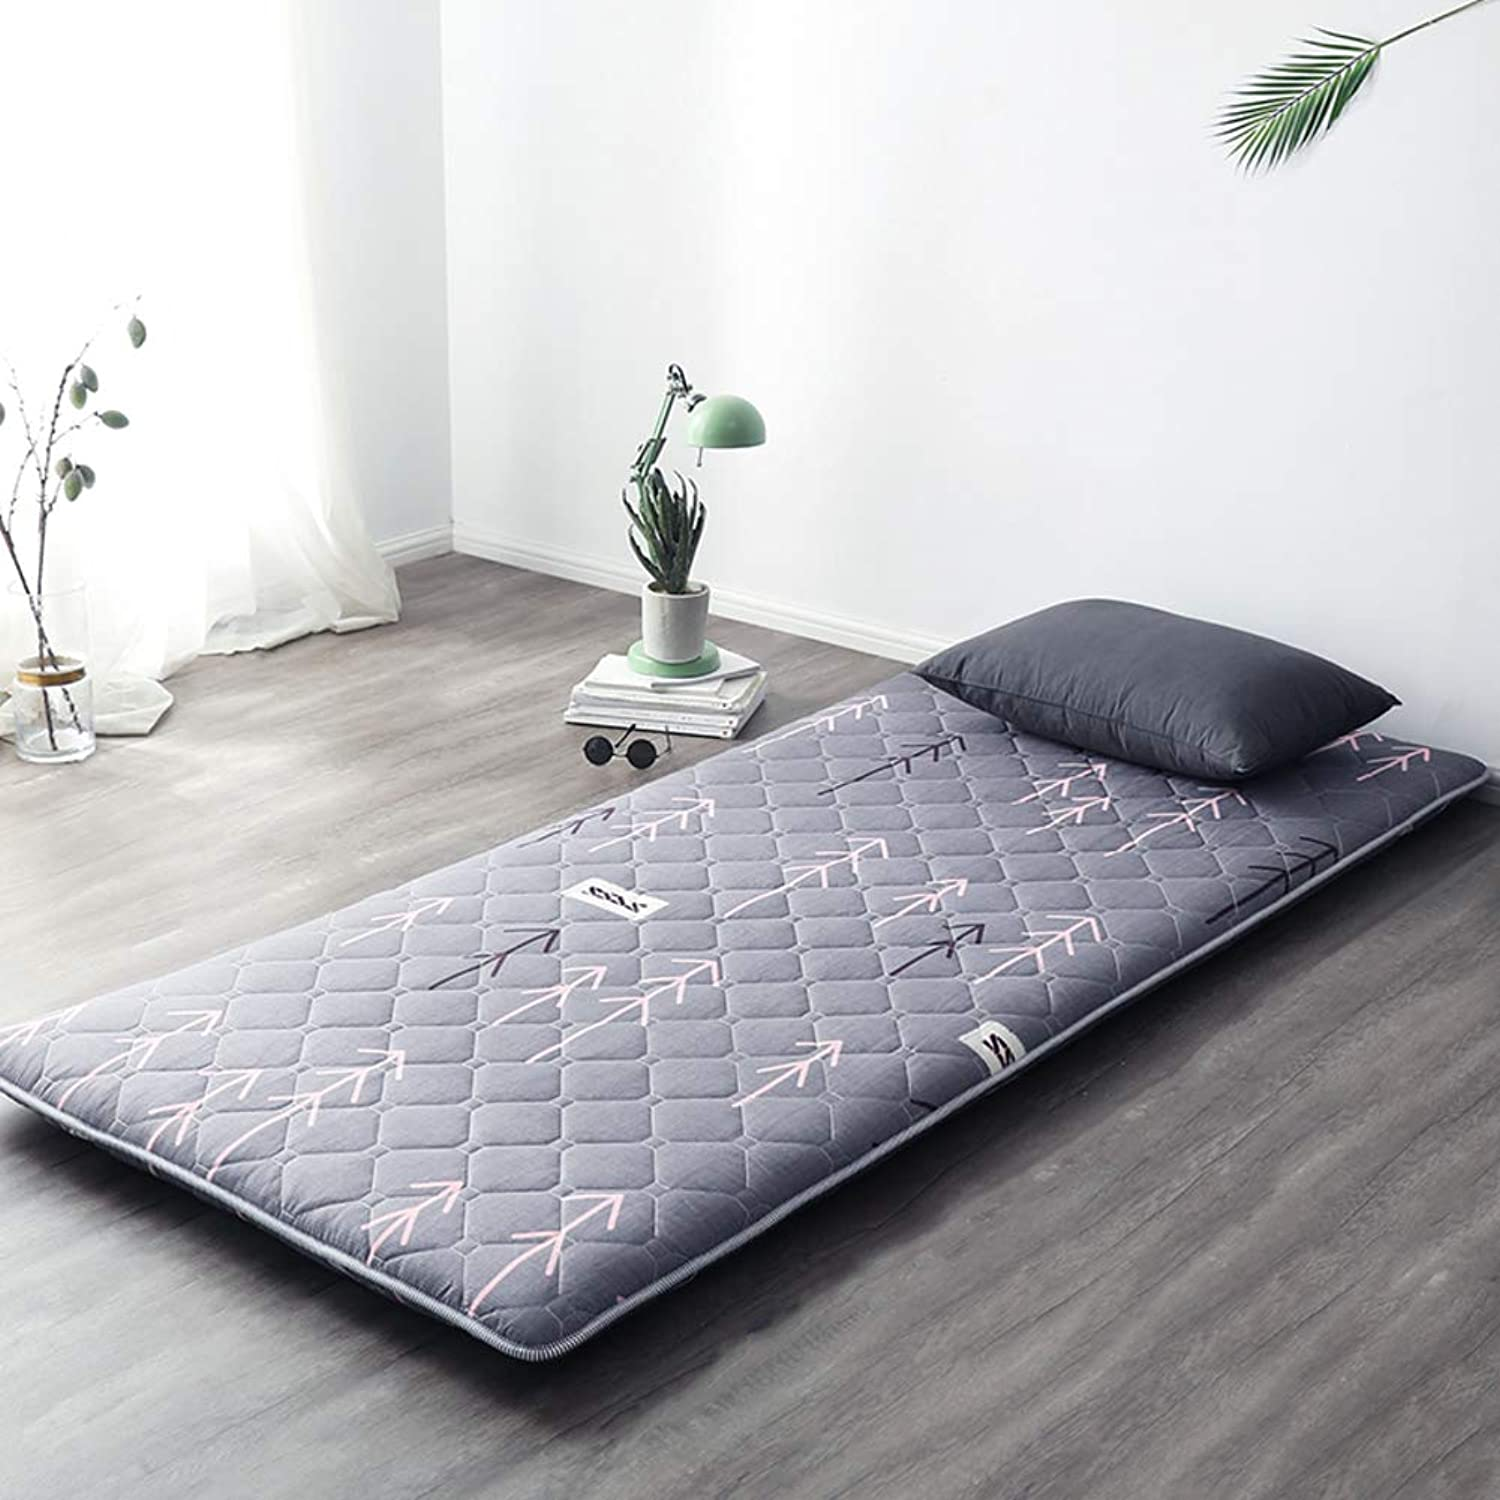 Quilted Fitted Floor Futon Mattress Japanese Bed Sleeping Pad Matt Mat Foldable Roll Up -k 120x200cm(47x79inch)